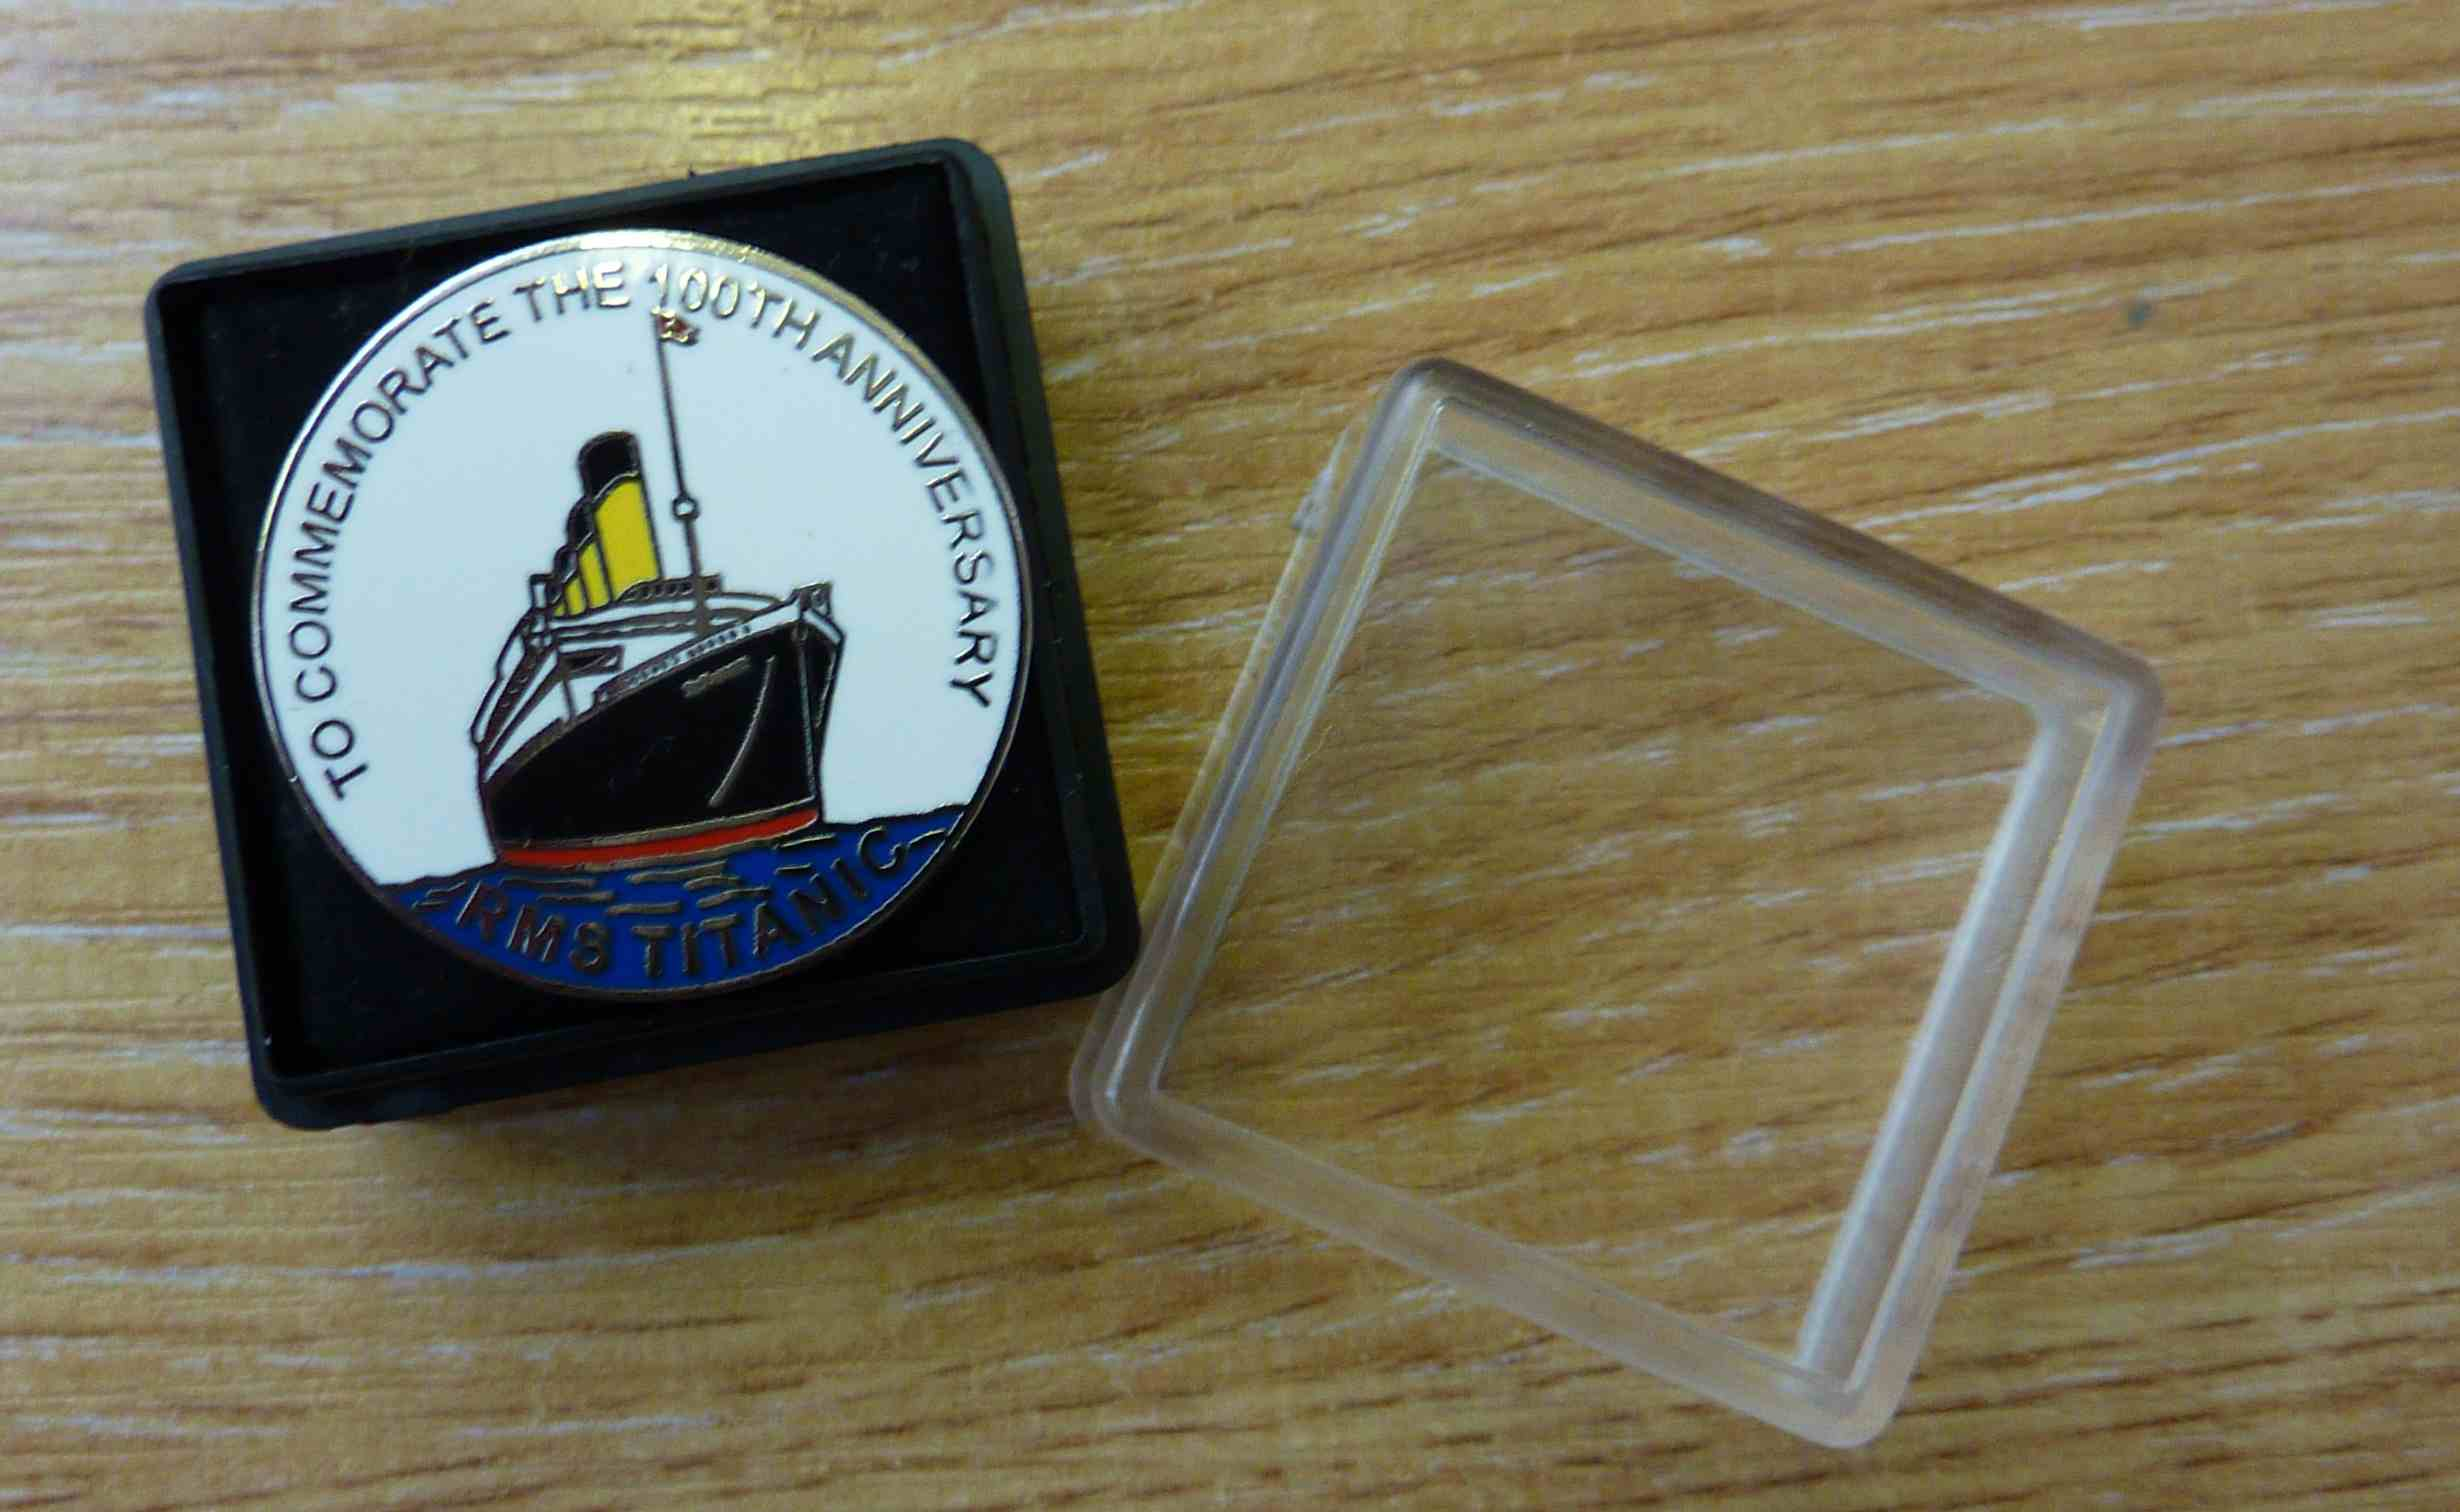 RMS Titanic 100th Anniversary Pin Badge